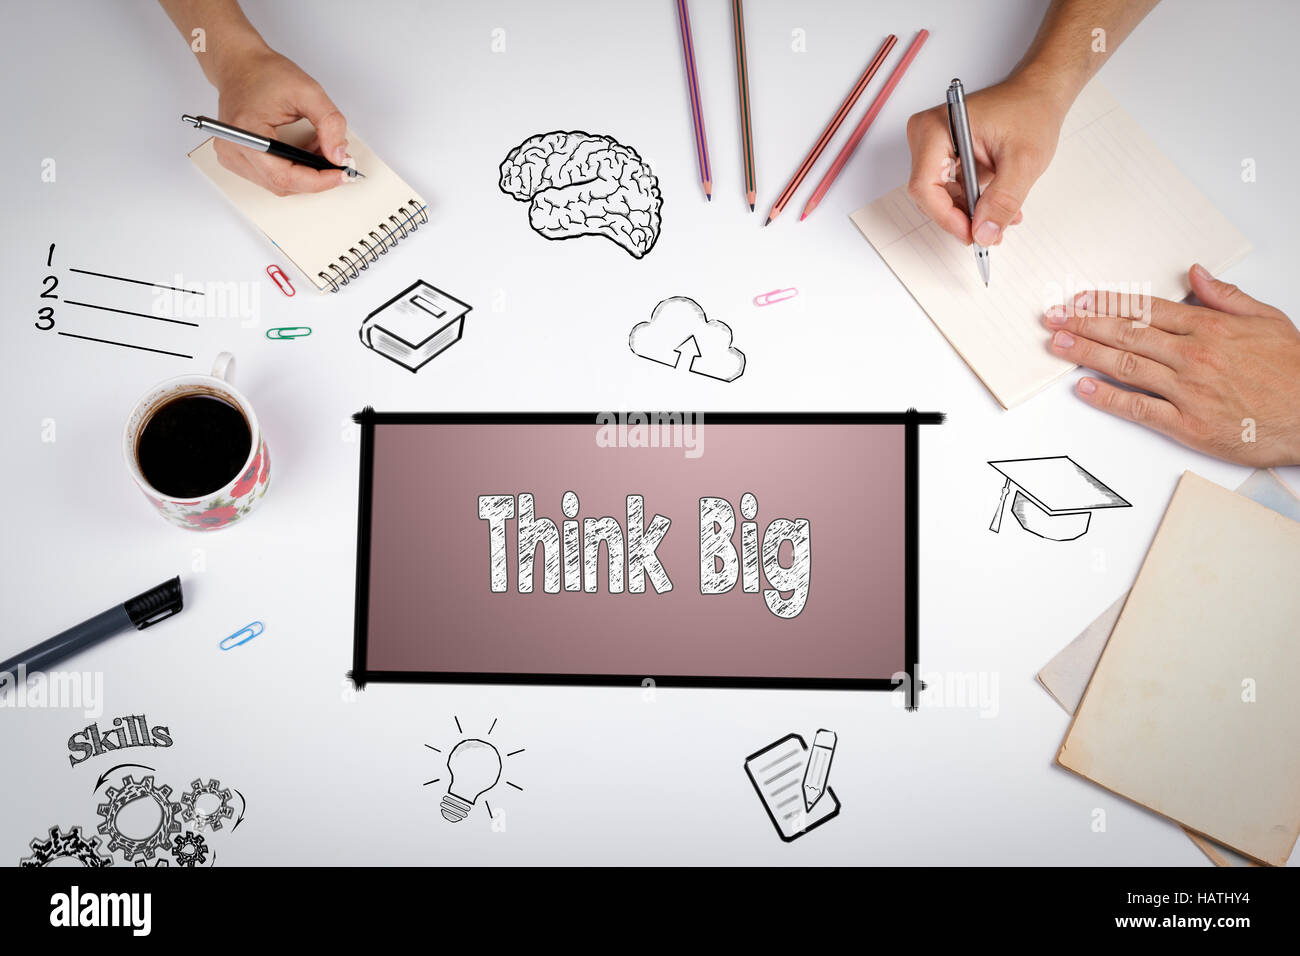 Think Big Faith Attitude Inspiration Optimism Concept. The meeting at the white office table - Stock Image